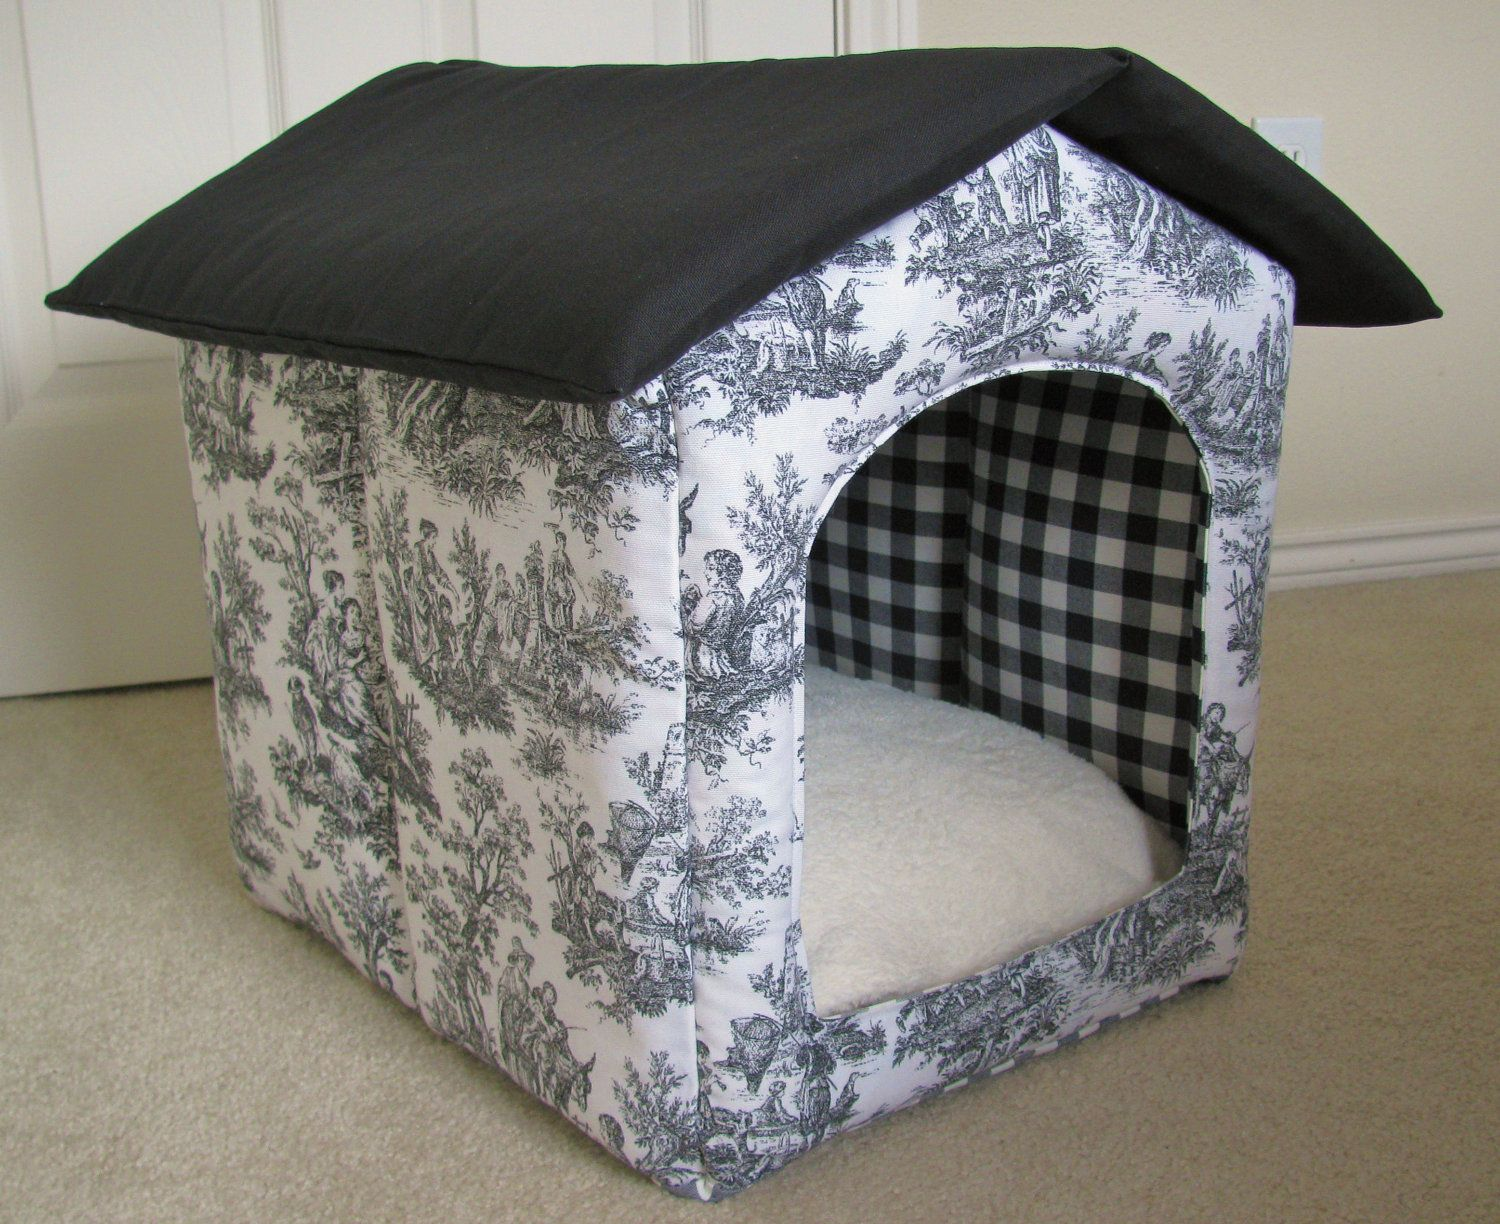 Items Similar To Portable Foldable Collapsible Indoor Waverly Black White Toile Fabric Cat Dog Puppy House On Ets Indoor Dog House Puppy House Toile Fabric